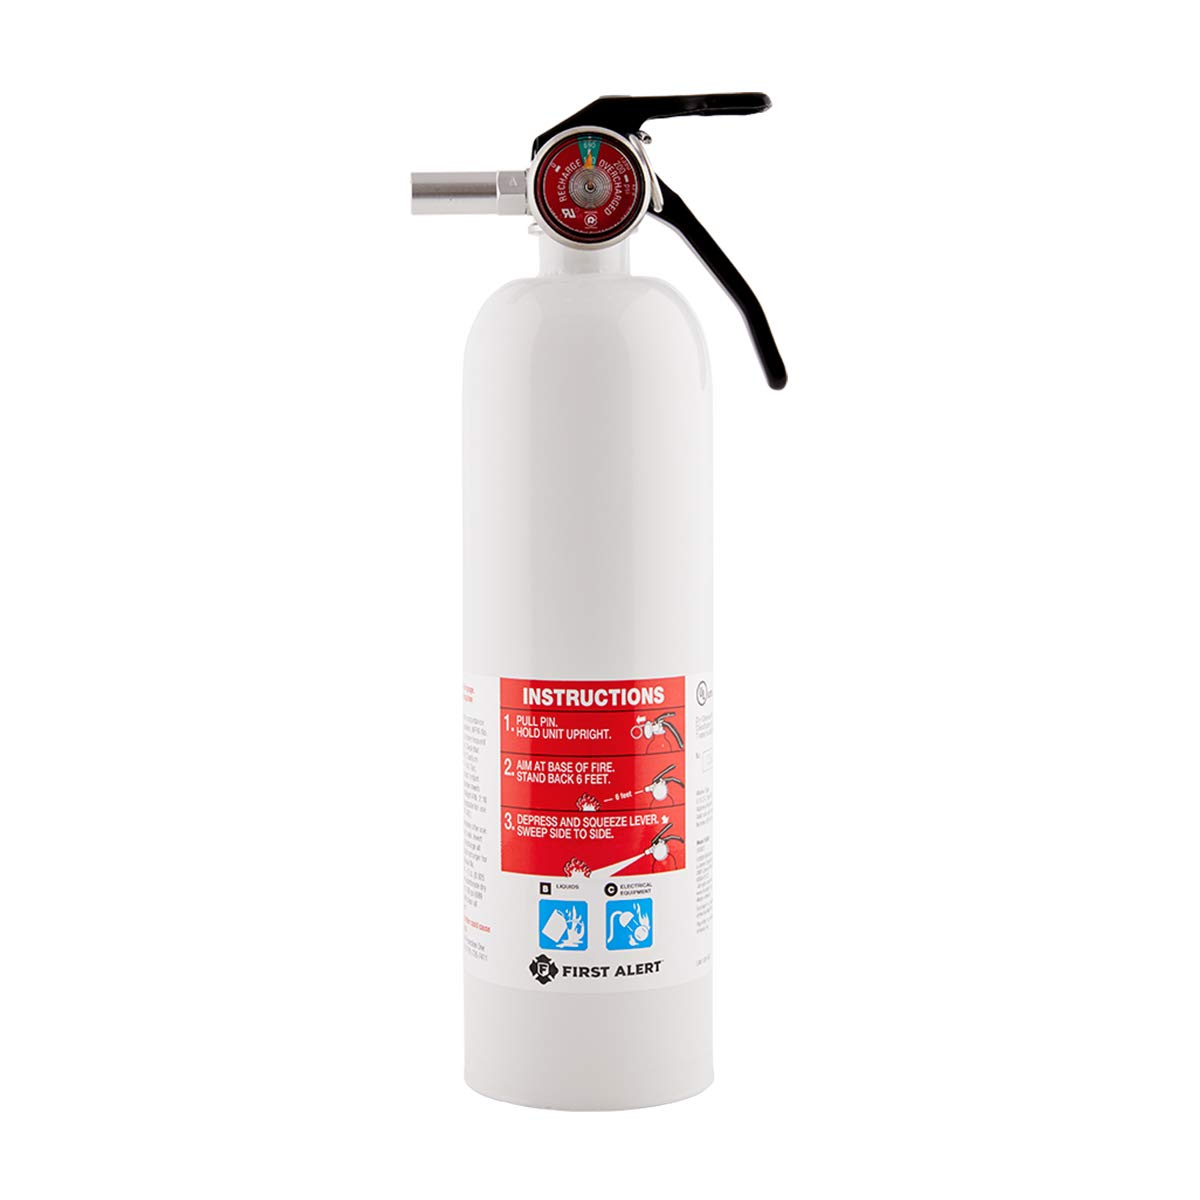 First Alert Fire Extinguisher | Recreation Vehicle and Marine Fire Extinguisher, White, Rechargeable, REC5